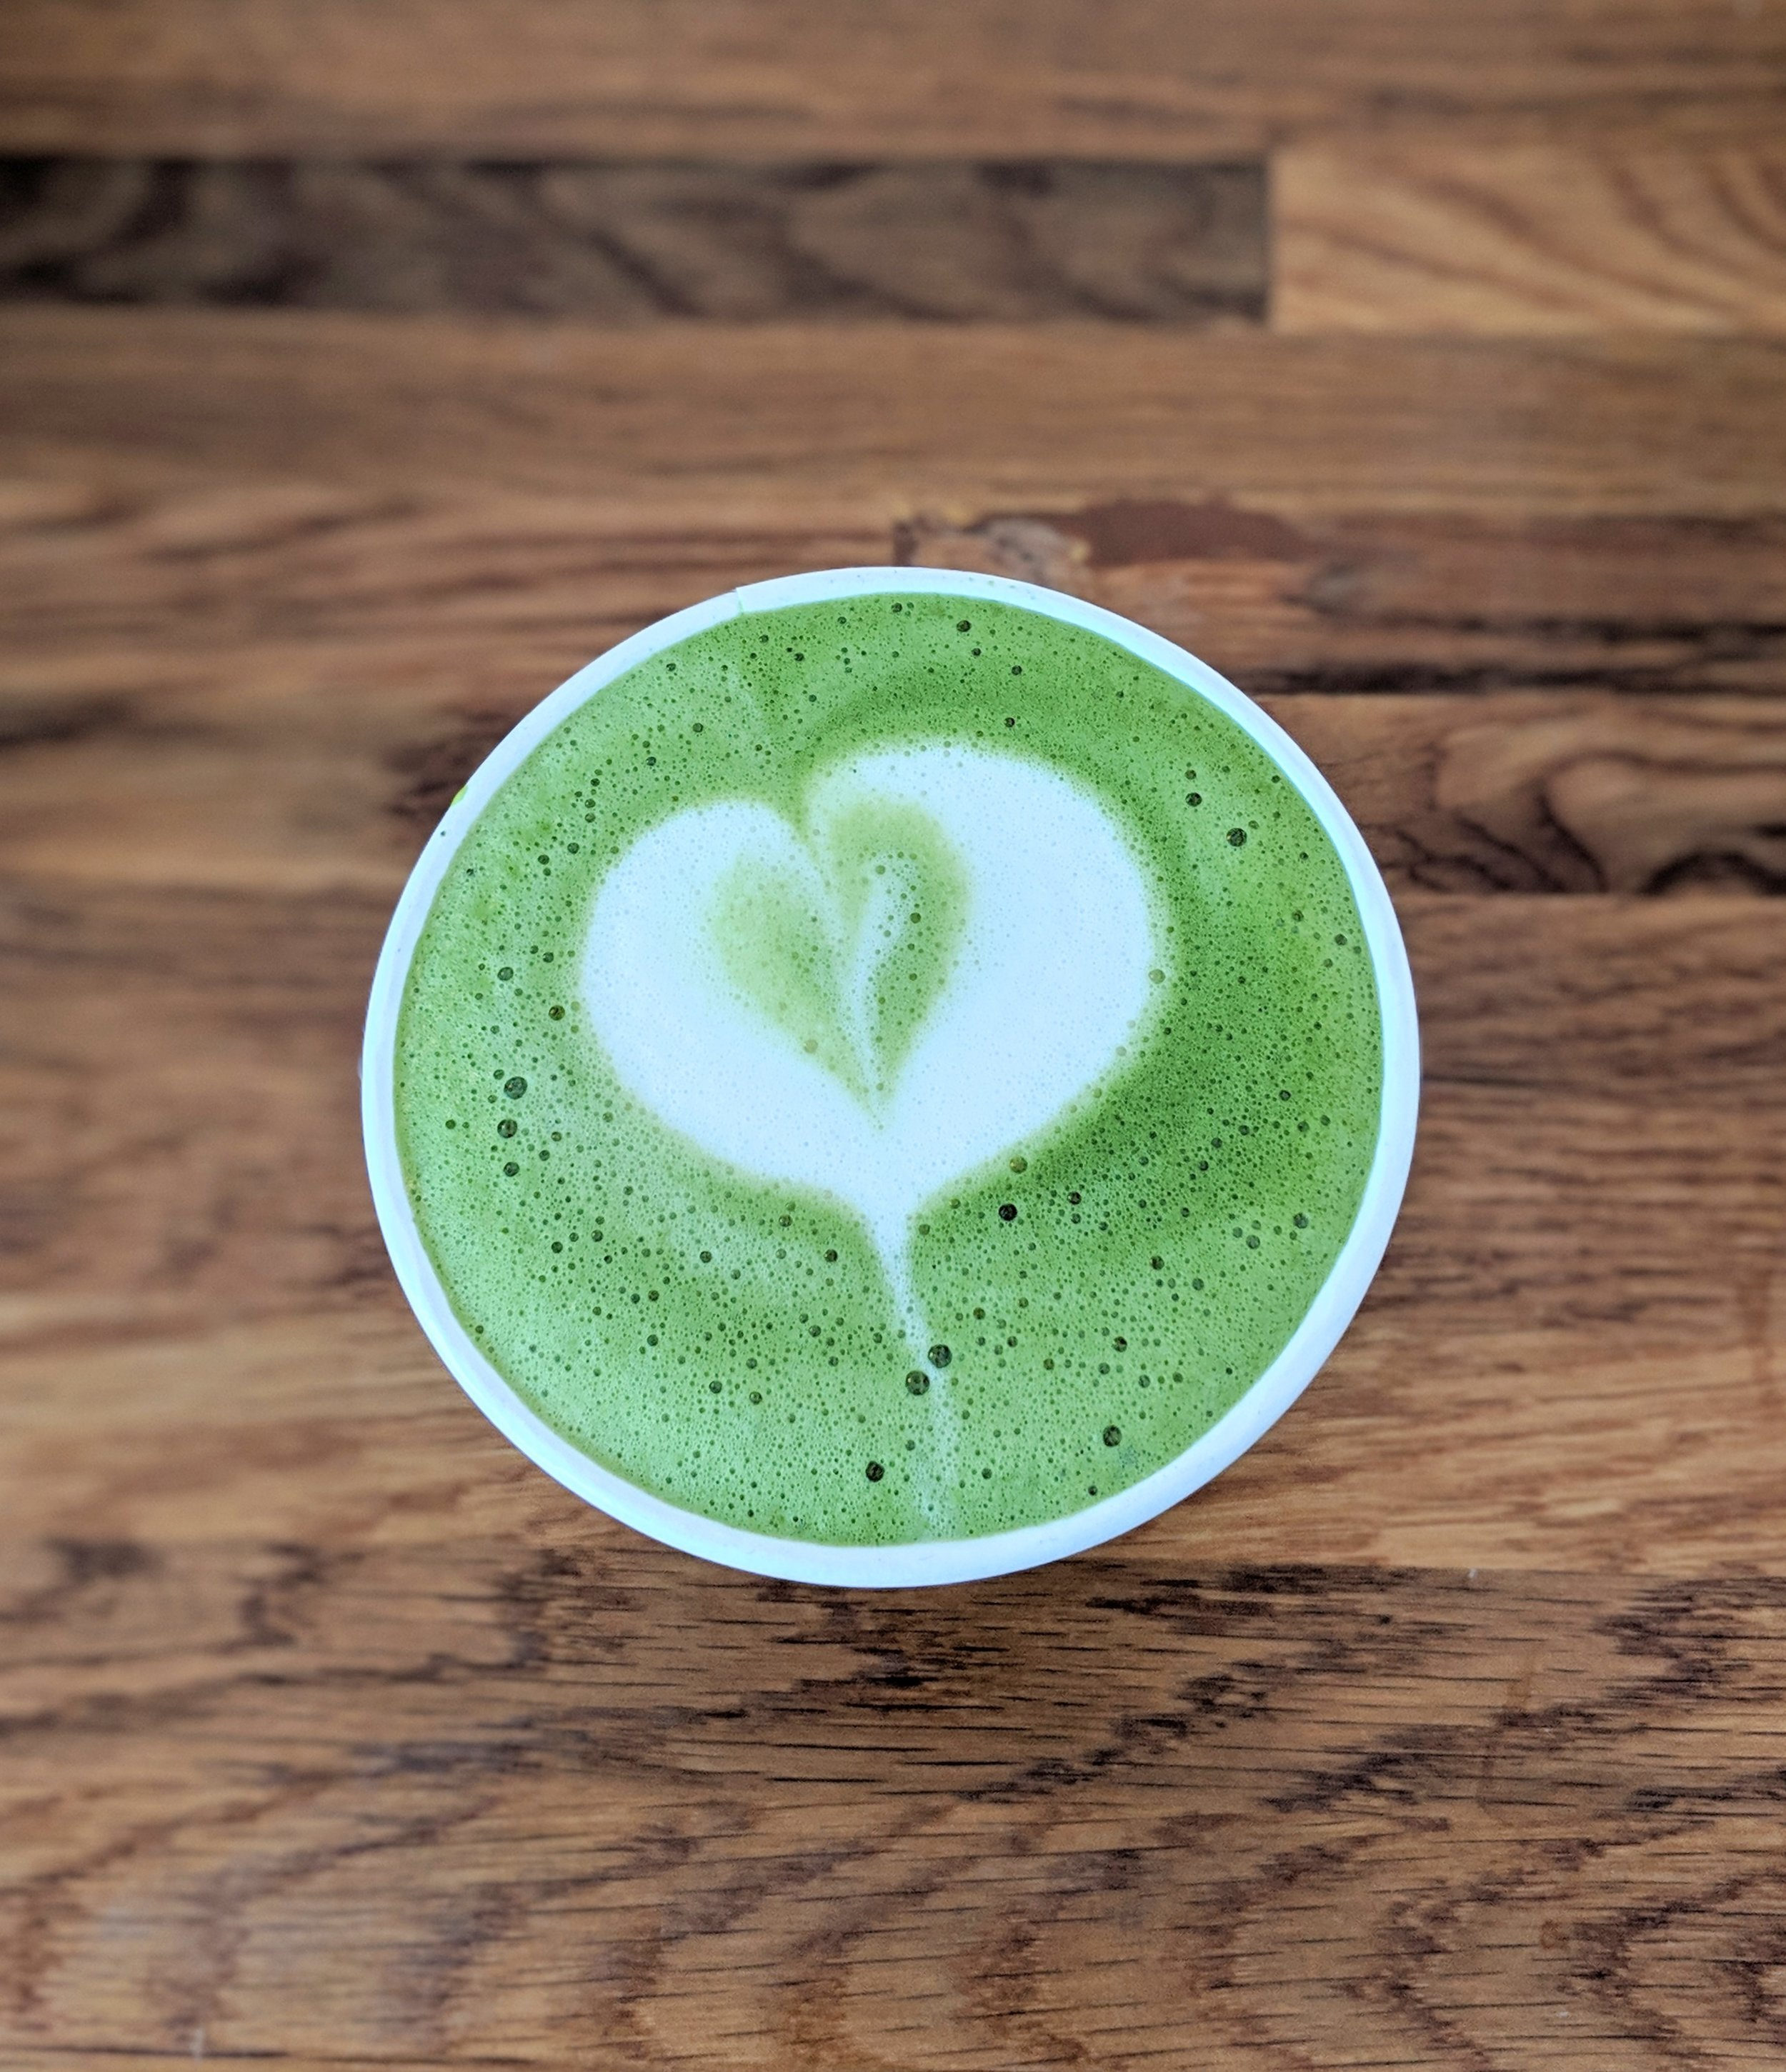 Hot matcha latte at Super Domestic Coffee in Culver City